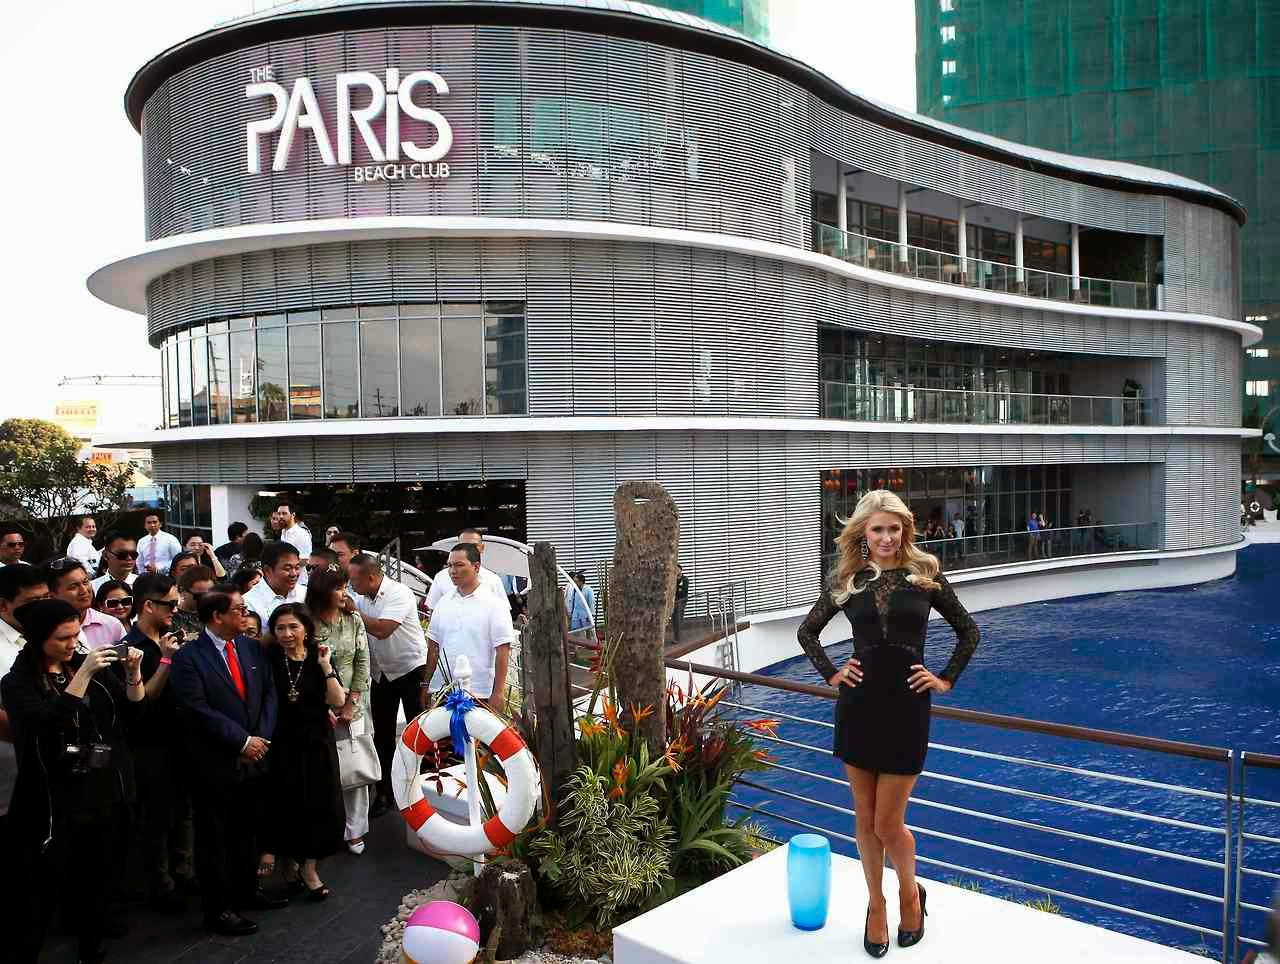 Paris-Hilton-at-Paris-Beach-Club